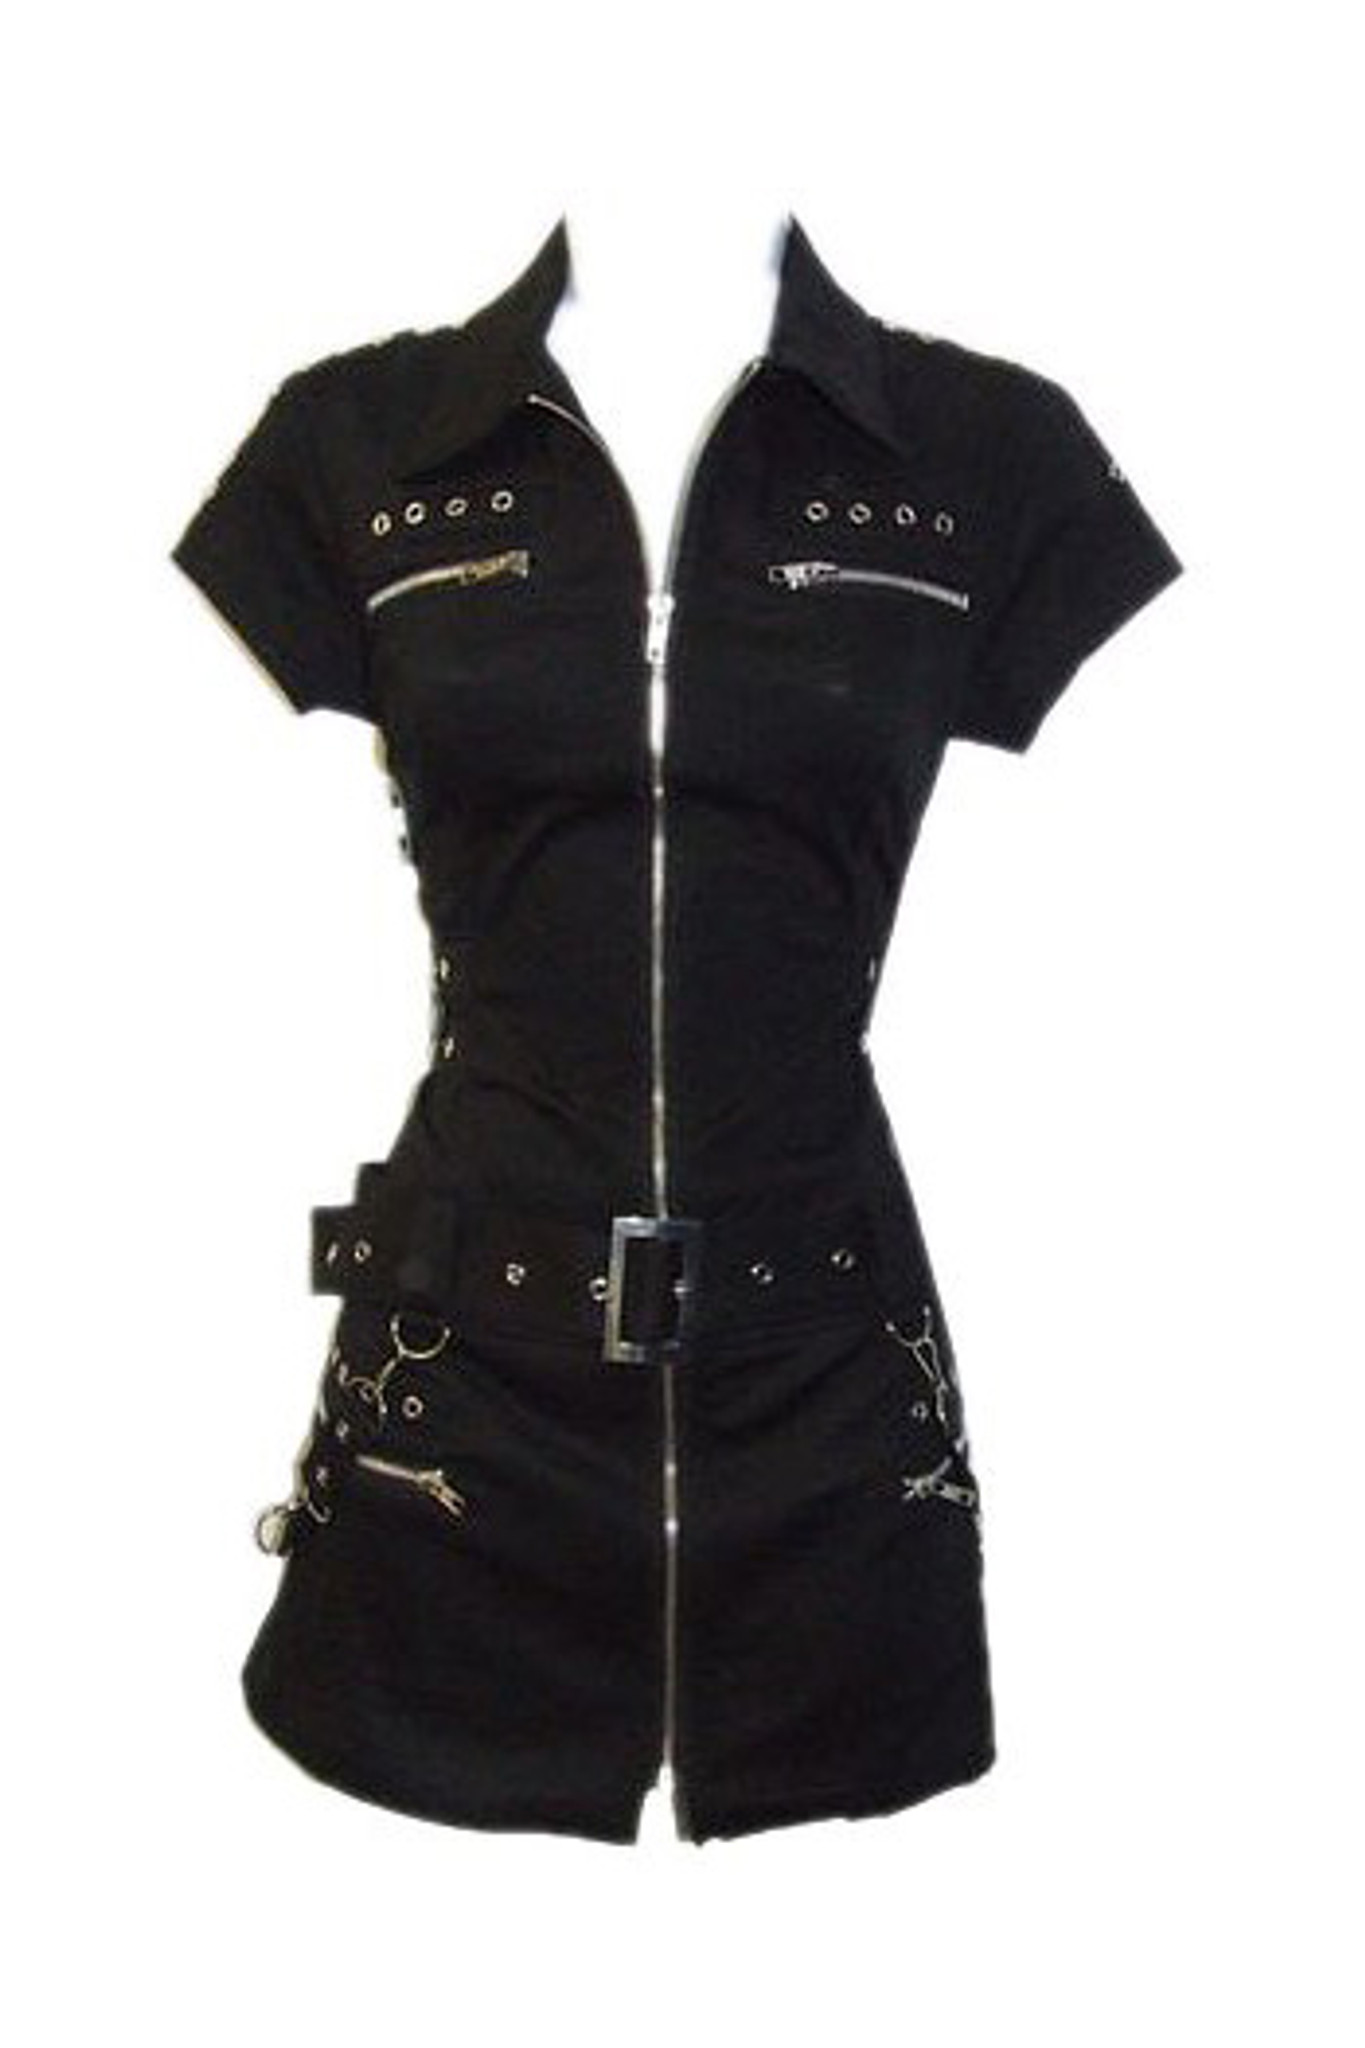 Goth - Punk Black dress with zippers and grommets